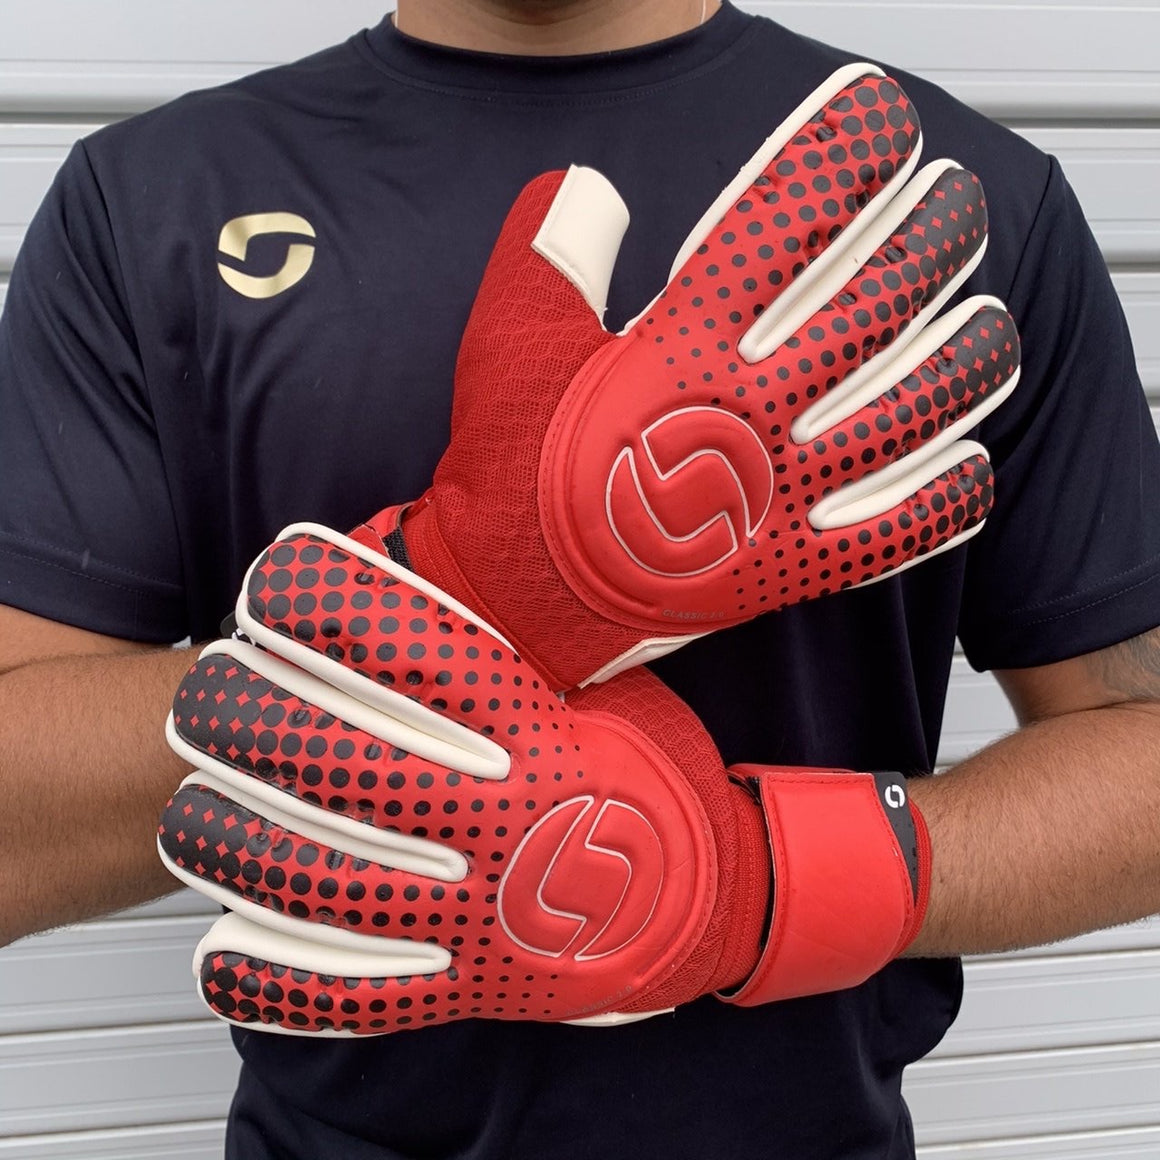 Onesport Classic 2.0 Negative Goalkeeper Gloves Red / White